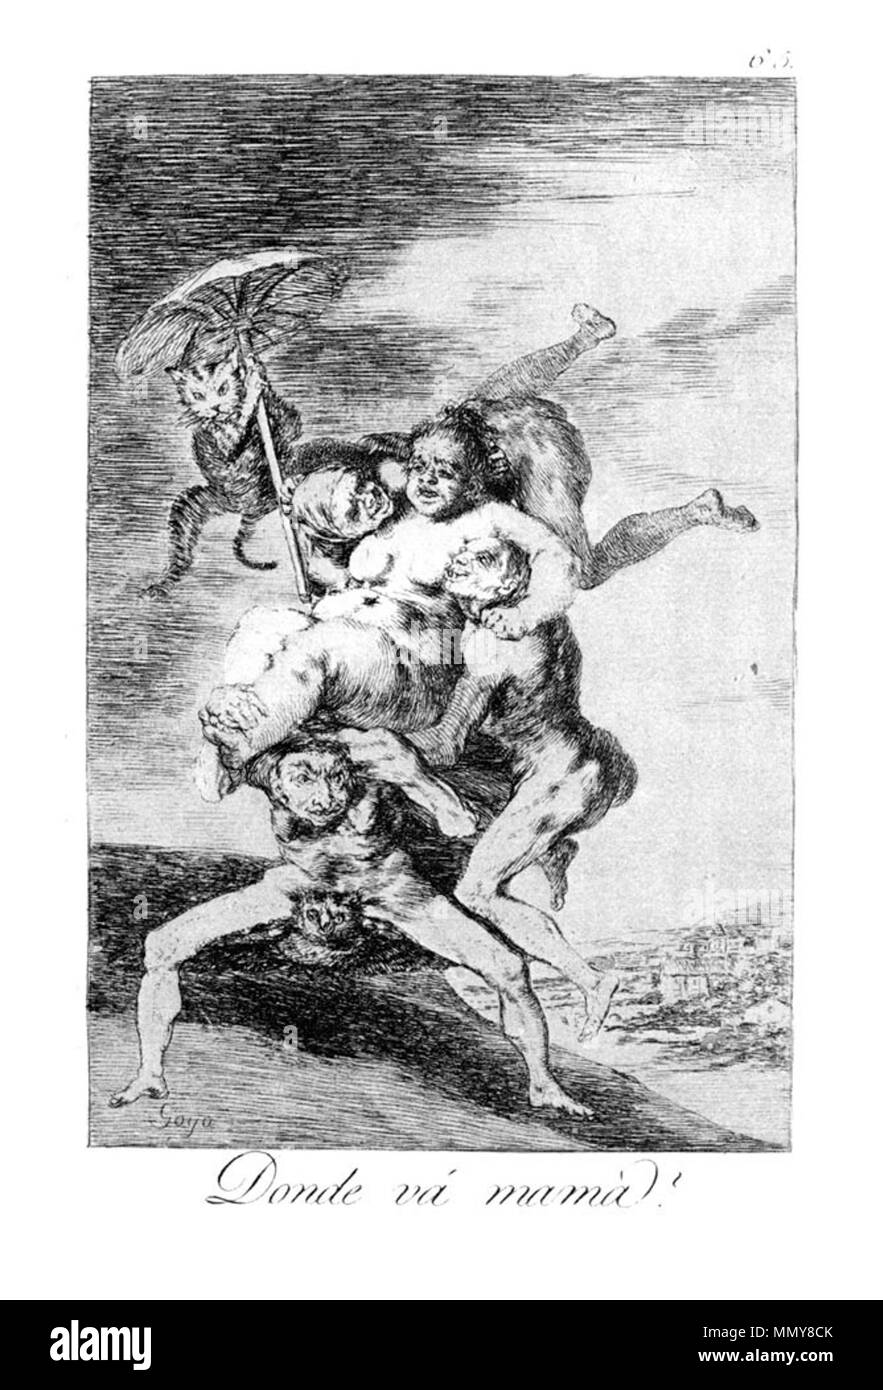 . Los Caprichos is a set of 80 aquatint prints created by Francisco Goya for release in 1799.  . 1799.   Francisco Goya (1746–1828)   Alternative names Francisco Goya Lucientes, Francisco de Goya y Lucientes, Francisco José Goya Lucientes  Description Spanish painter, printmaker, lithographer, engraver and etcher  Date of birth/death 30 March 1746 16 April 1828  Location of birth/death Fuendetodos Bordeaux  Work location Madrid, Zaragoza, Bordeaux  Authority control  : Q5432 VIAF:?54343141 ISNI:?0000 0001 2280 1608 ULAN:?500118936 LCCN:?n79003363 NLA:?36545788 WorldCat Goya - Caprichos (65 - Stock Image